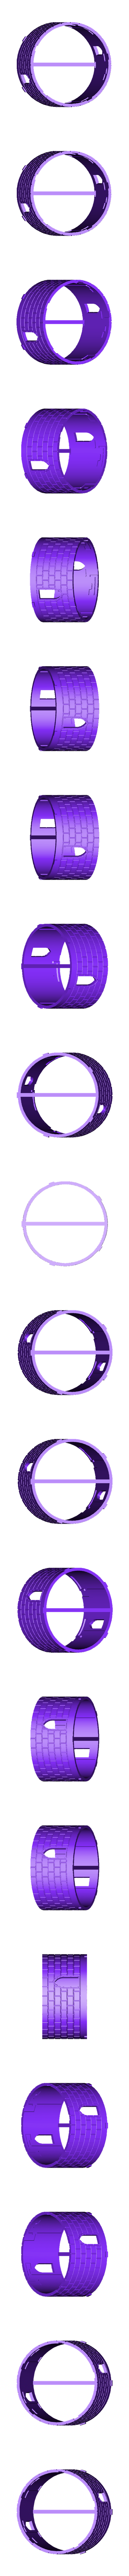 3rd_layer_thick_wall.stl Download STL file All-in-on travel DnD kit • 3D printer template, aclugston519